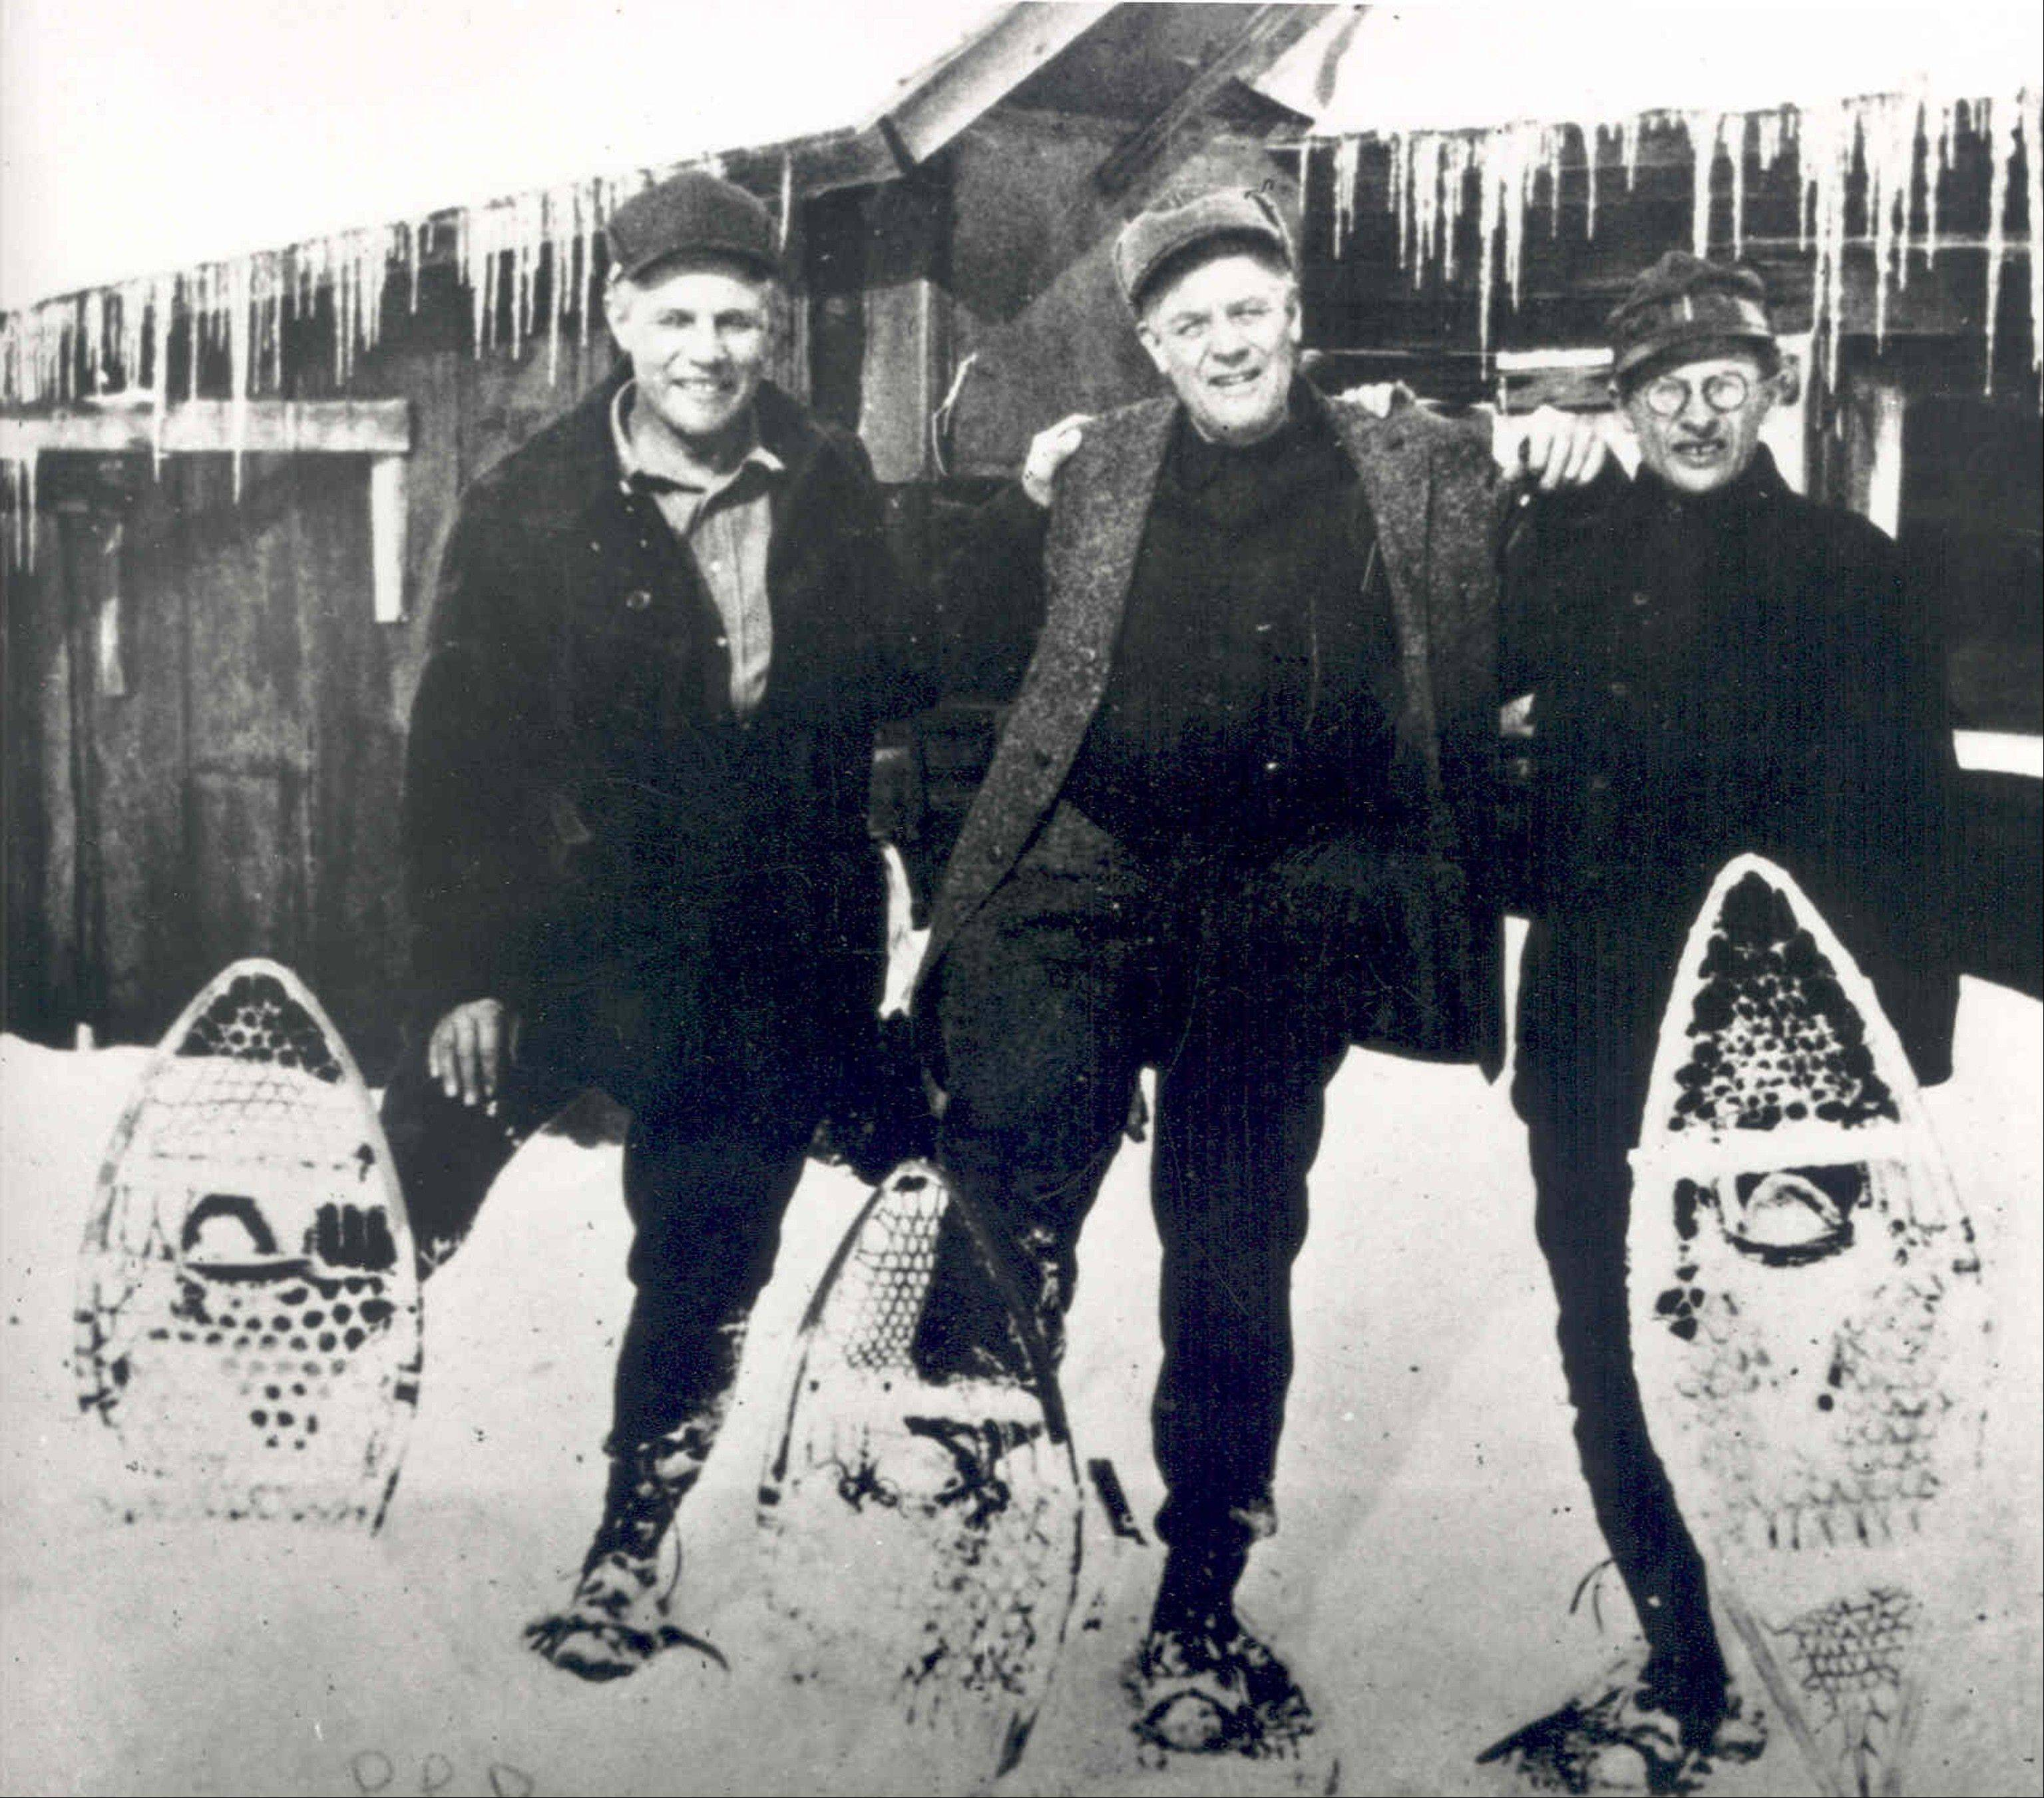 Leon L. Bean, left, stands in snowshoes with his brothers Otho, center, and Guy in 1923. Leon Gorman, L.L.'s grandson, said he was told that his grandfather was born Leon Linwood Bean and that his name somehow morphed into Leon Leonwood Bean.